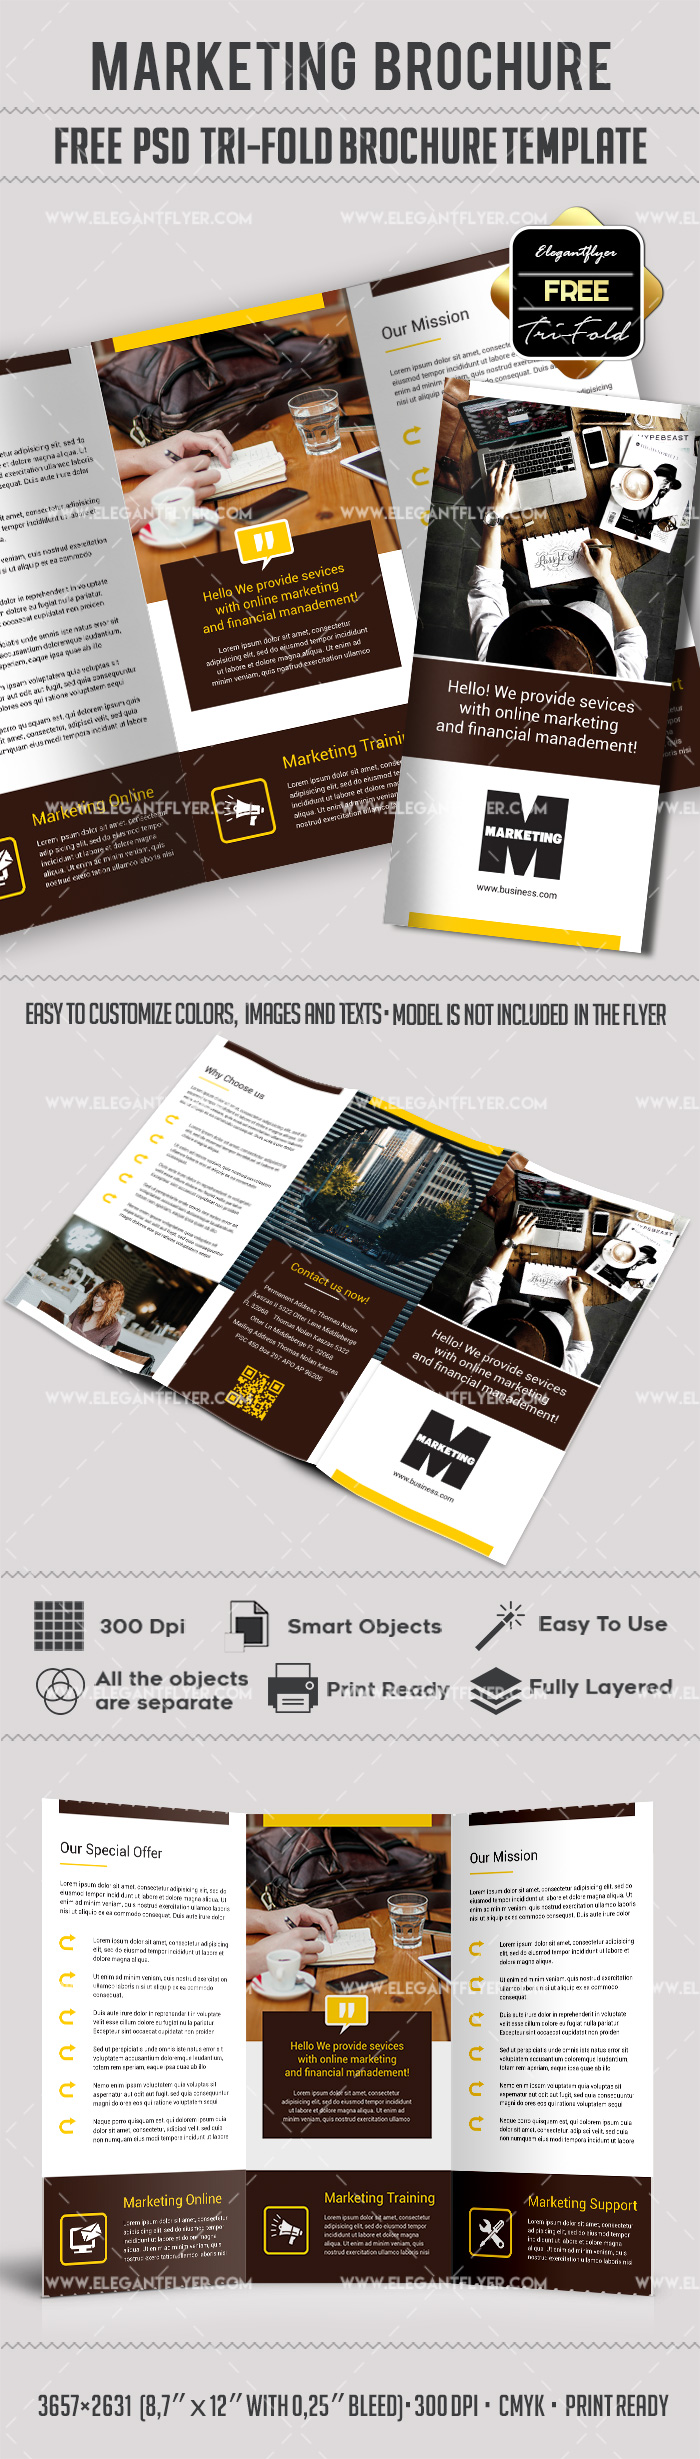 Marketing free tri fold psd brochure template by for Free brochure psd templates download